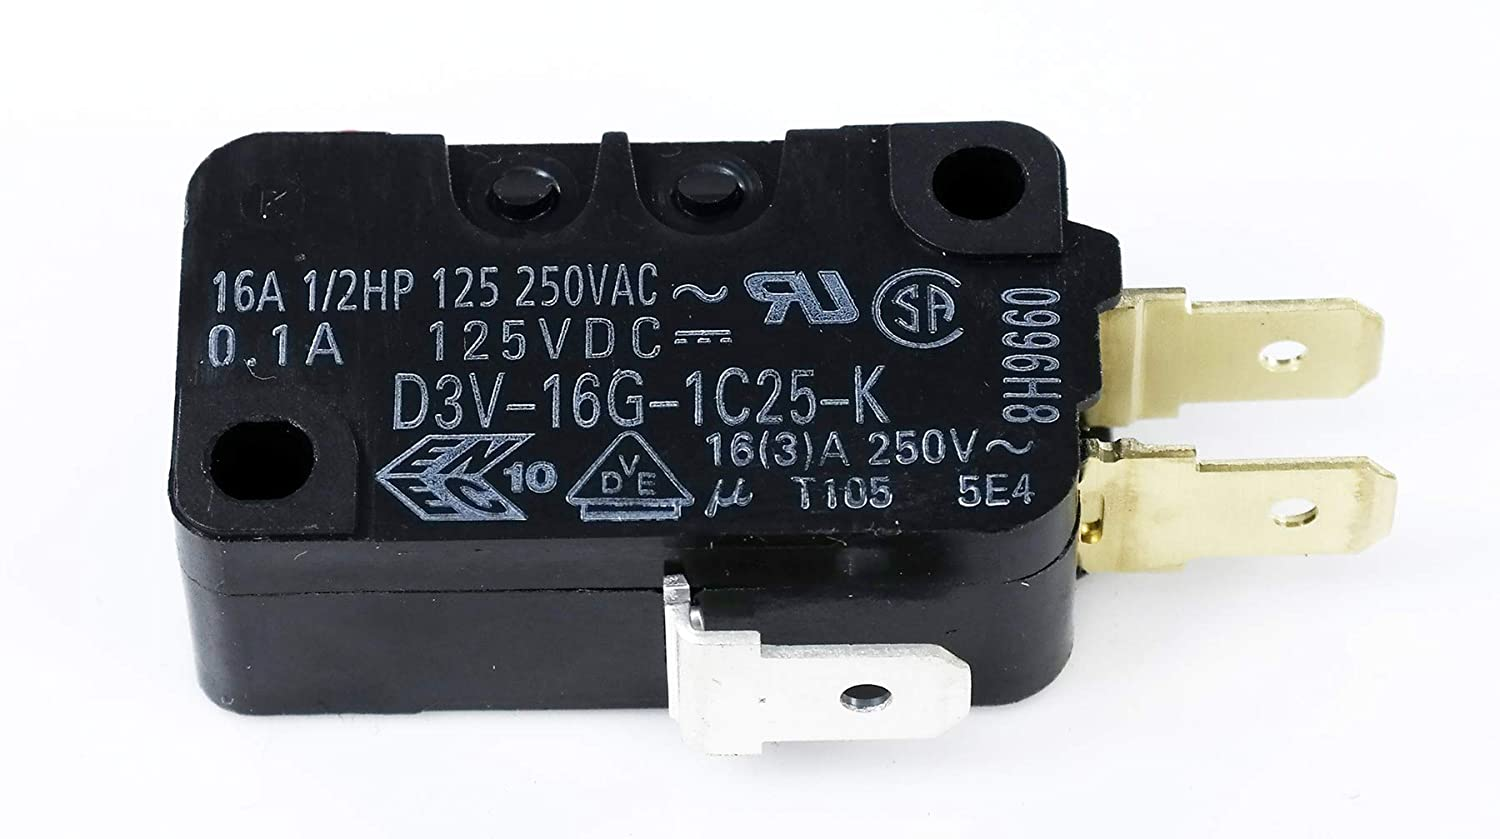 1X OMRON COMPONENTES ELECTRÓNICOS D3V-16G-1C25-K MICROSWITCH Pin émbolo SPDT 16A